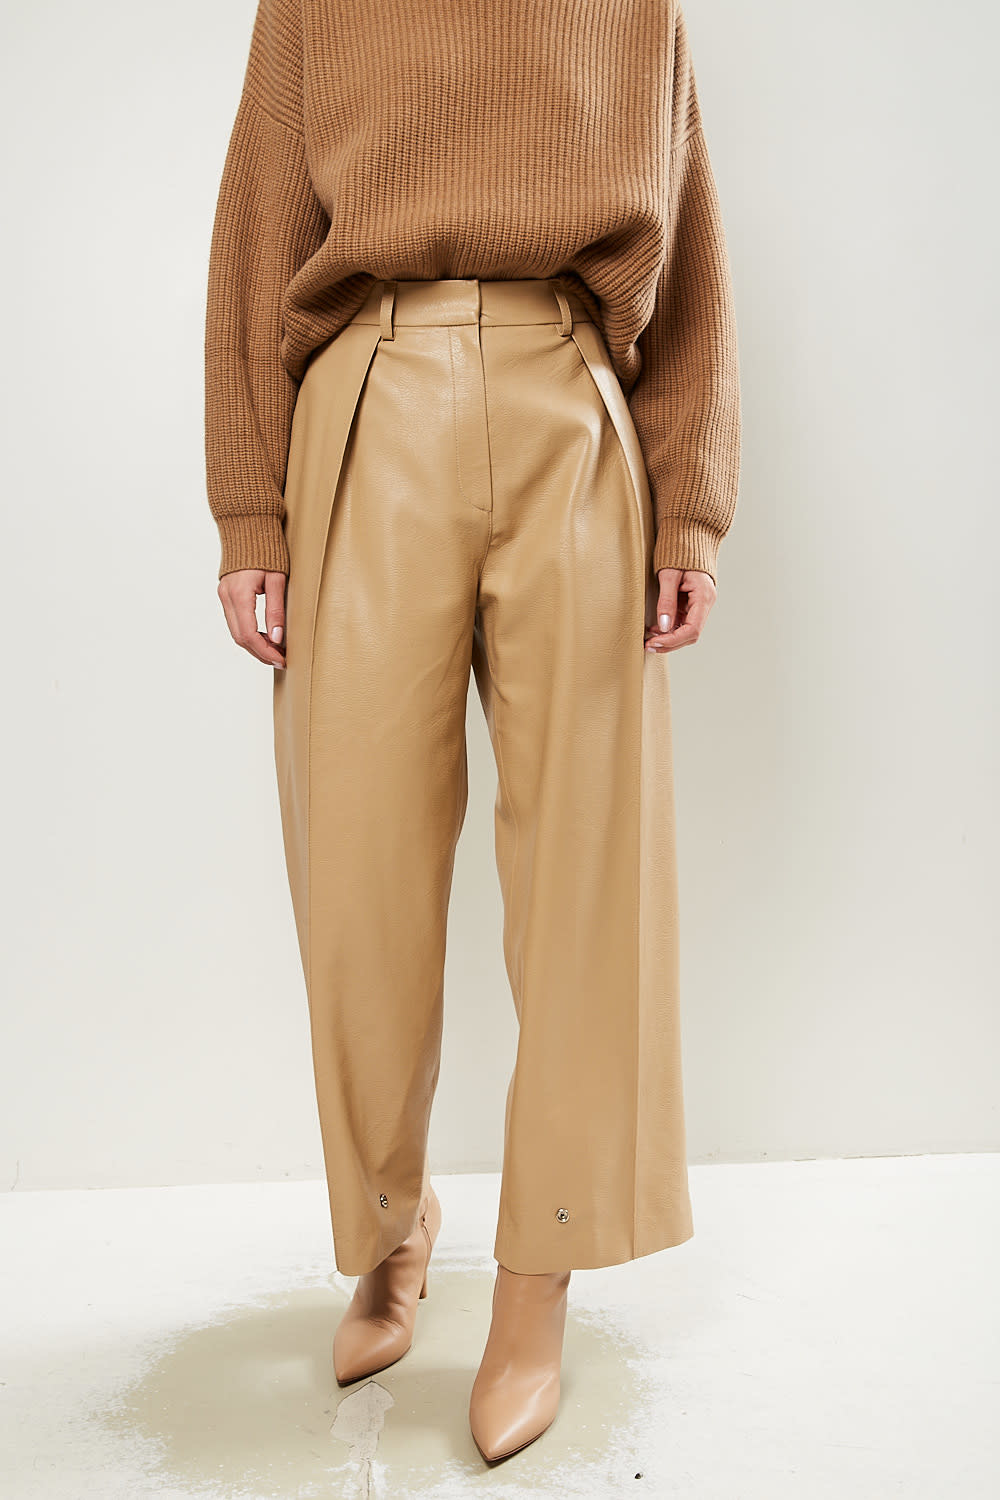 Drae - Ian faux leather pants